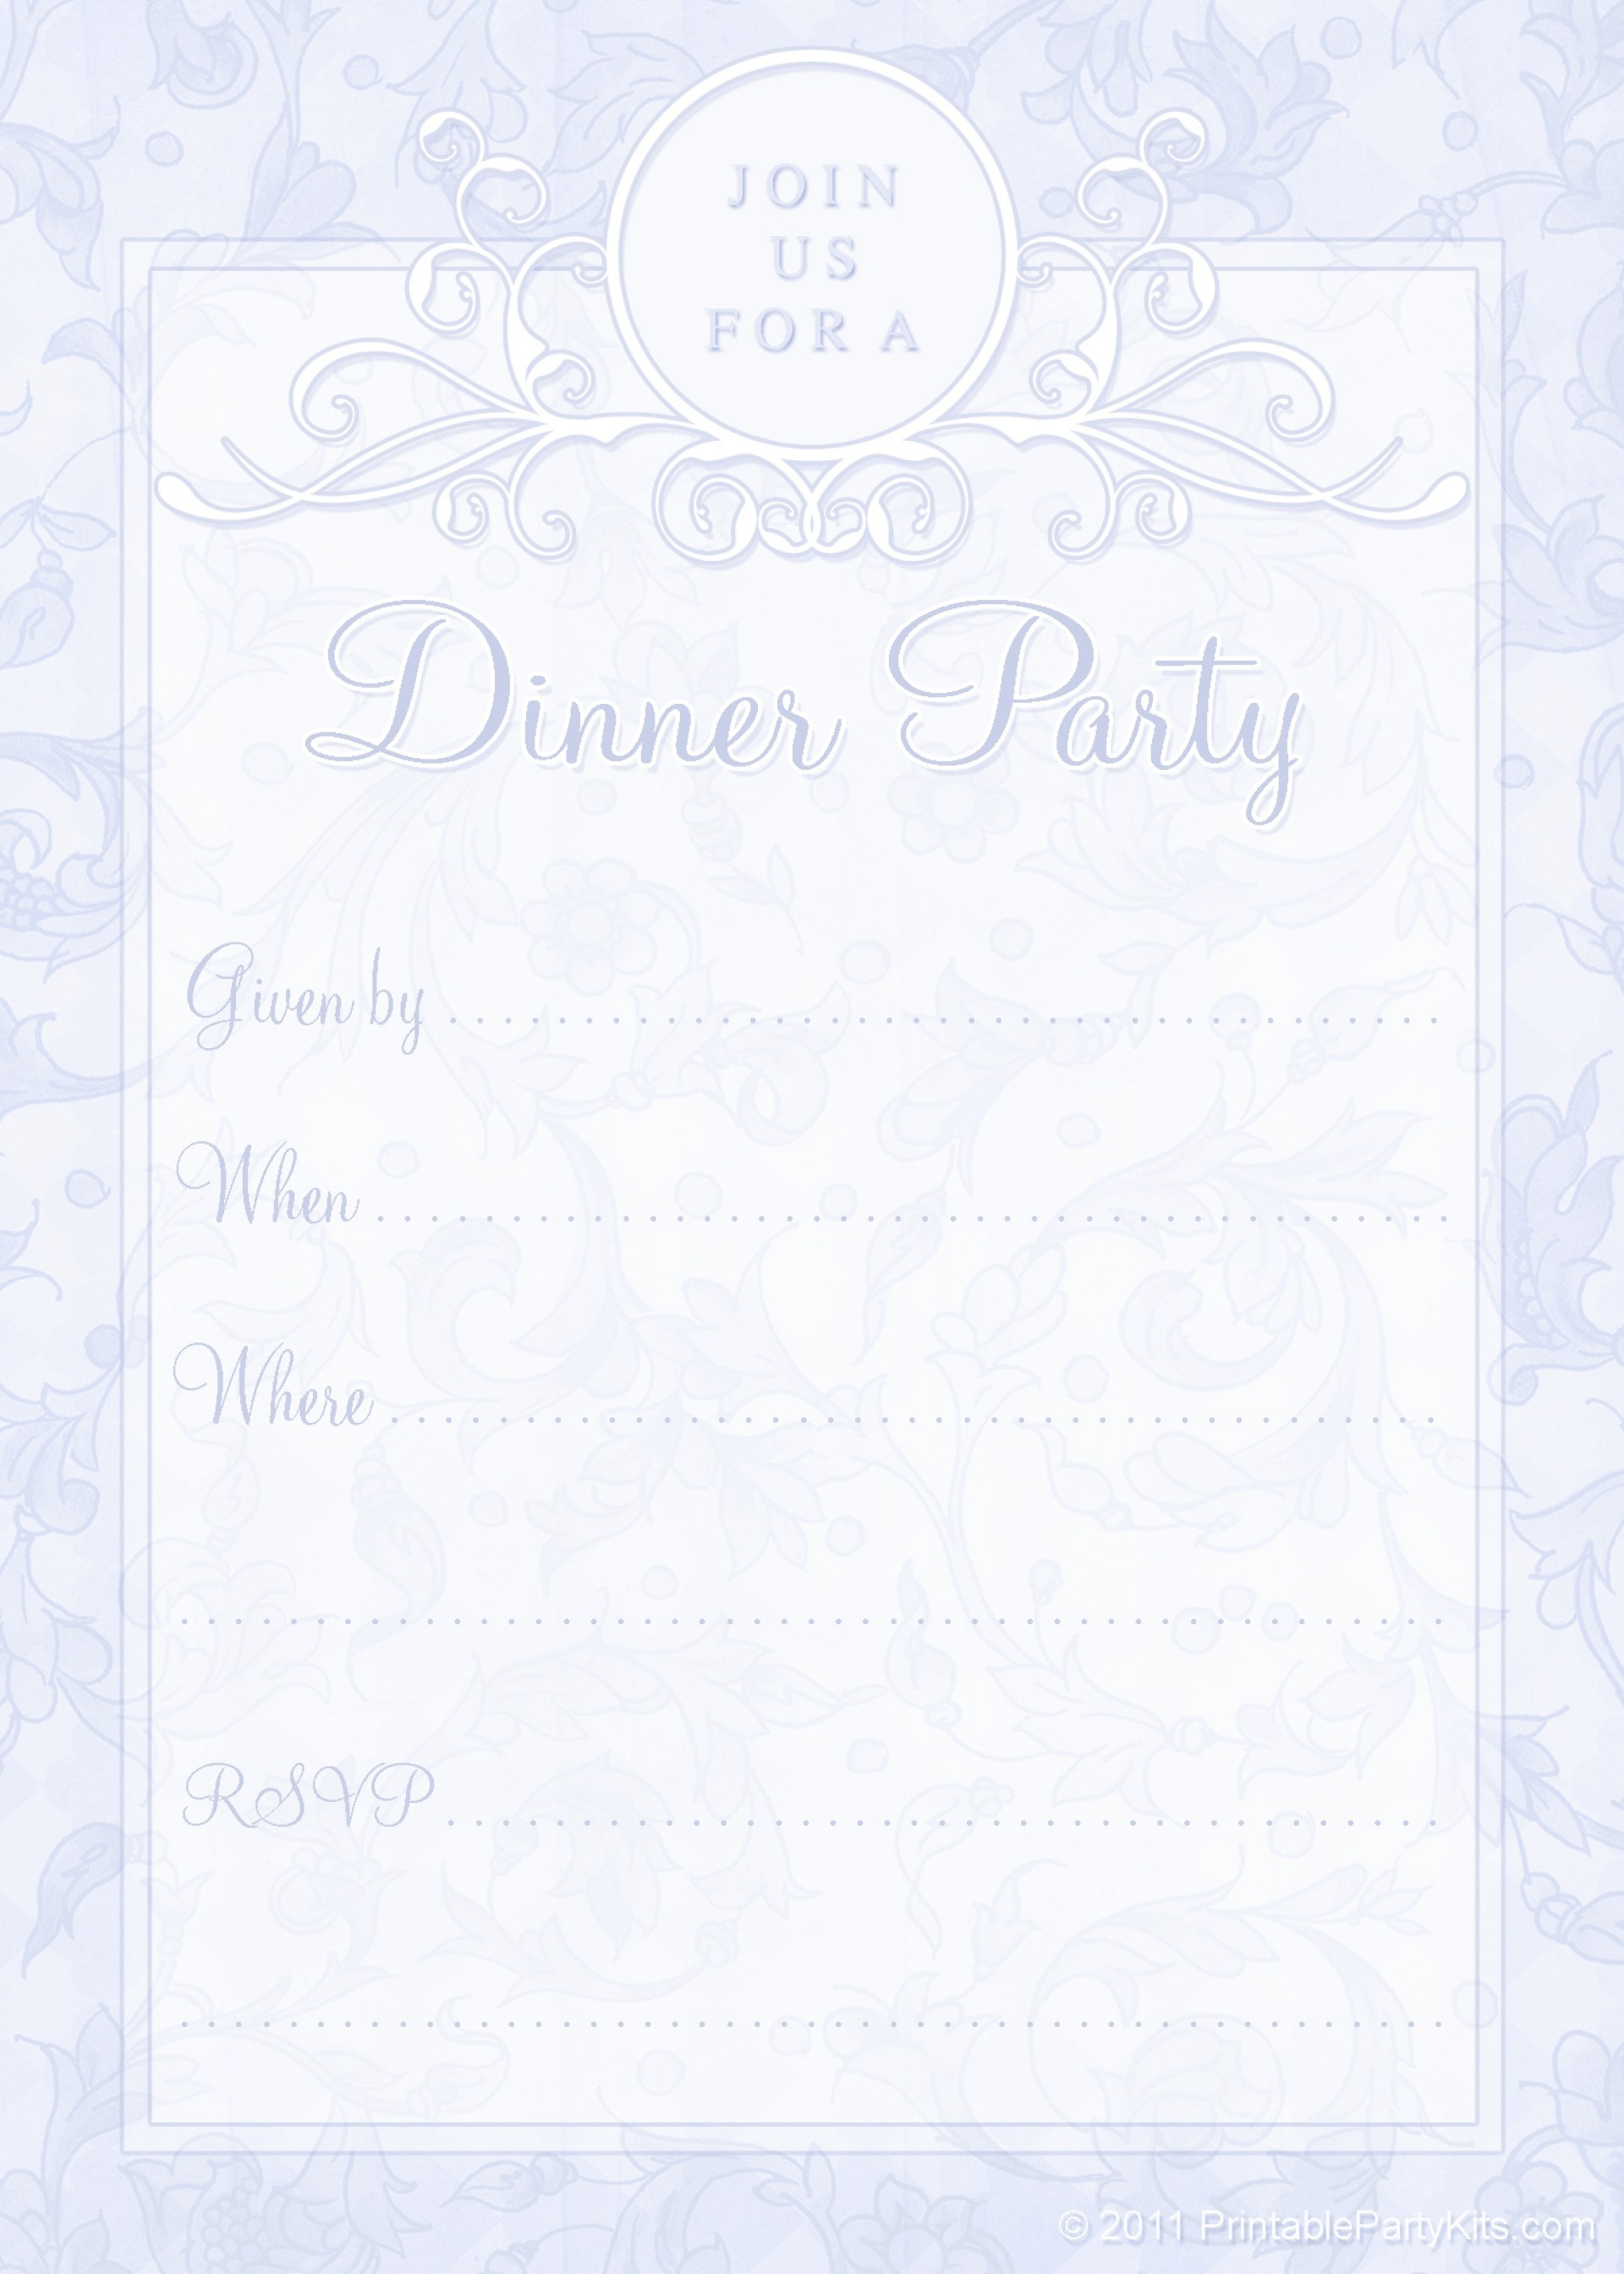 009 Dinner Party Invitations Templates Free Printable 44780 Template - Free Printable Italian Dinner Invitations